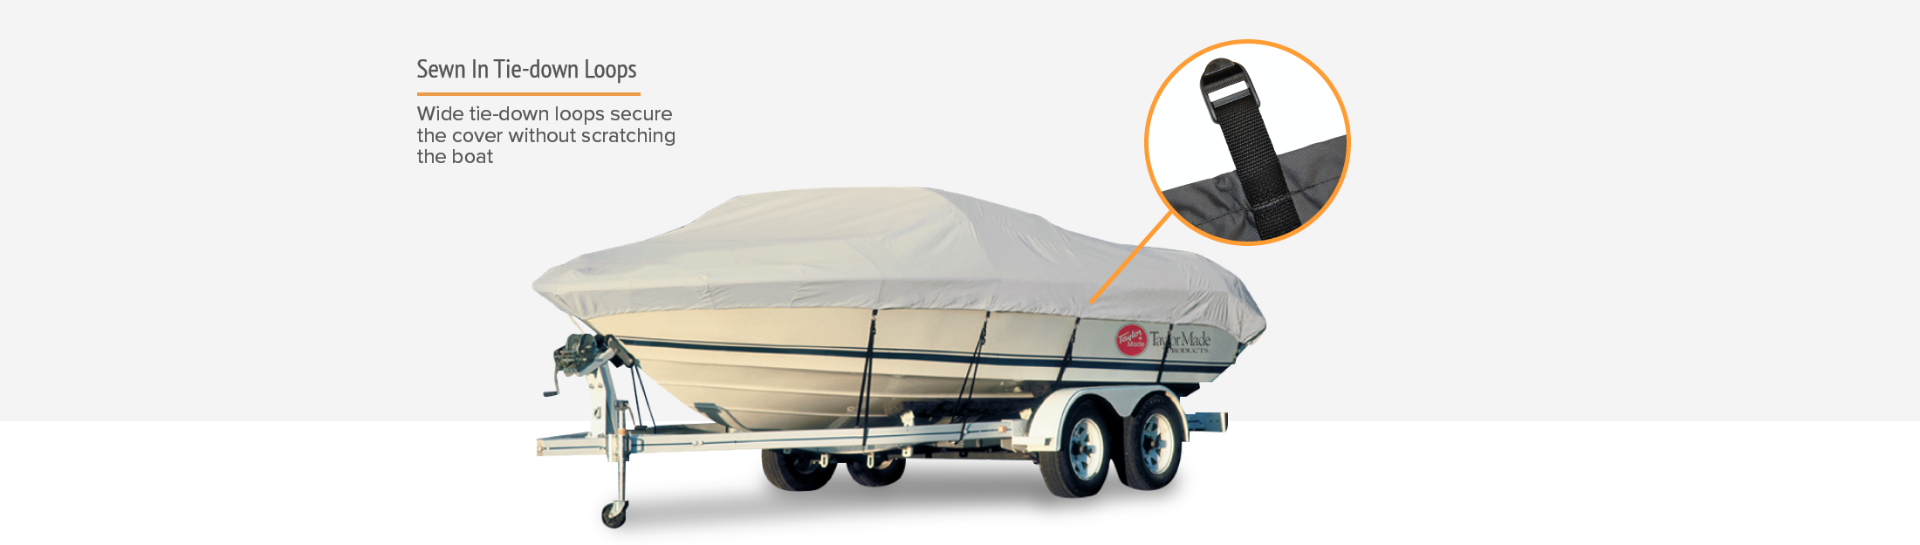 Taylor boat cover tie down loops